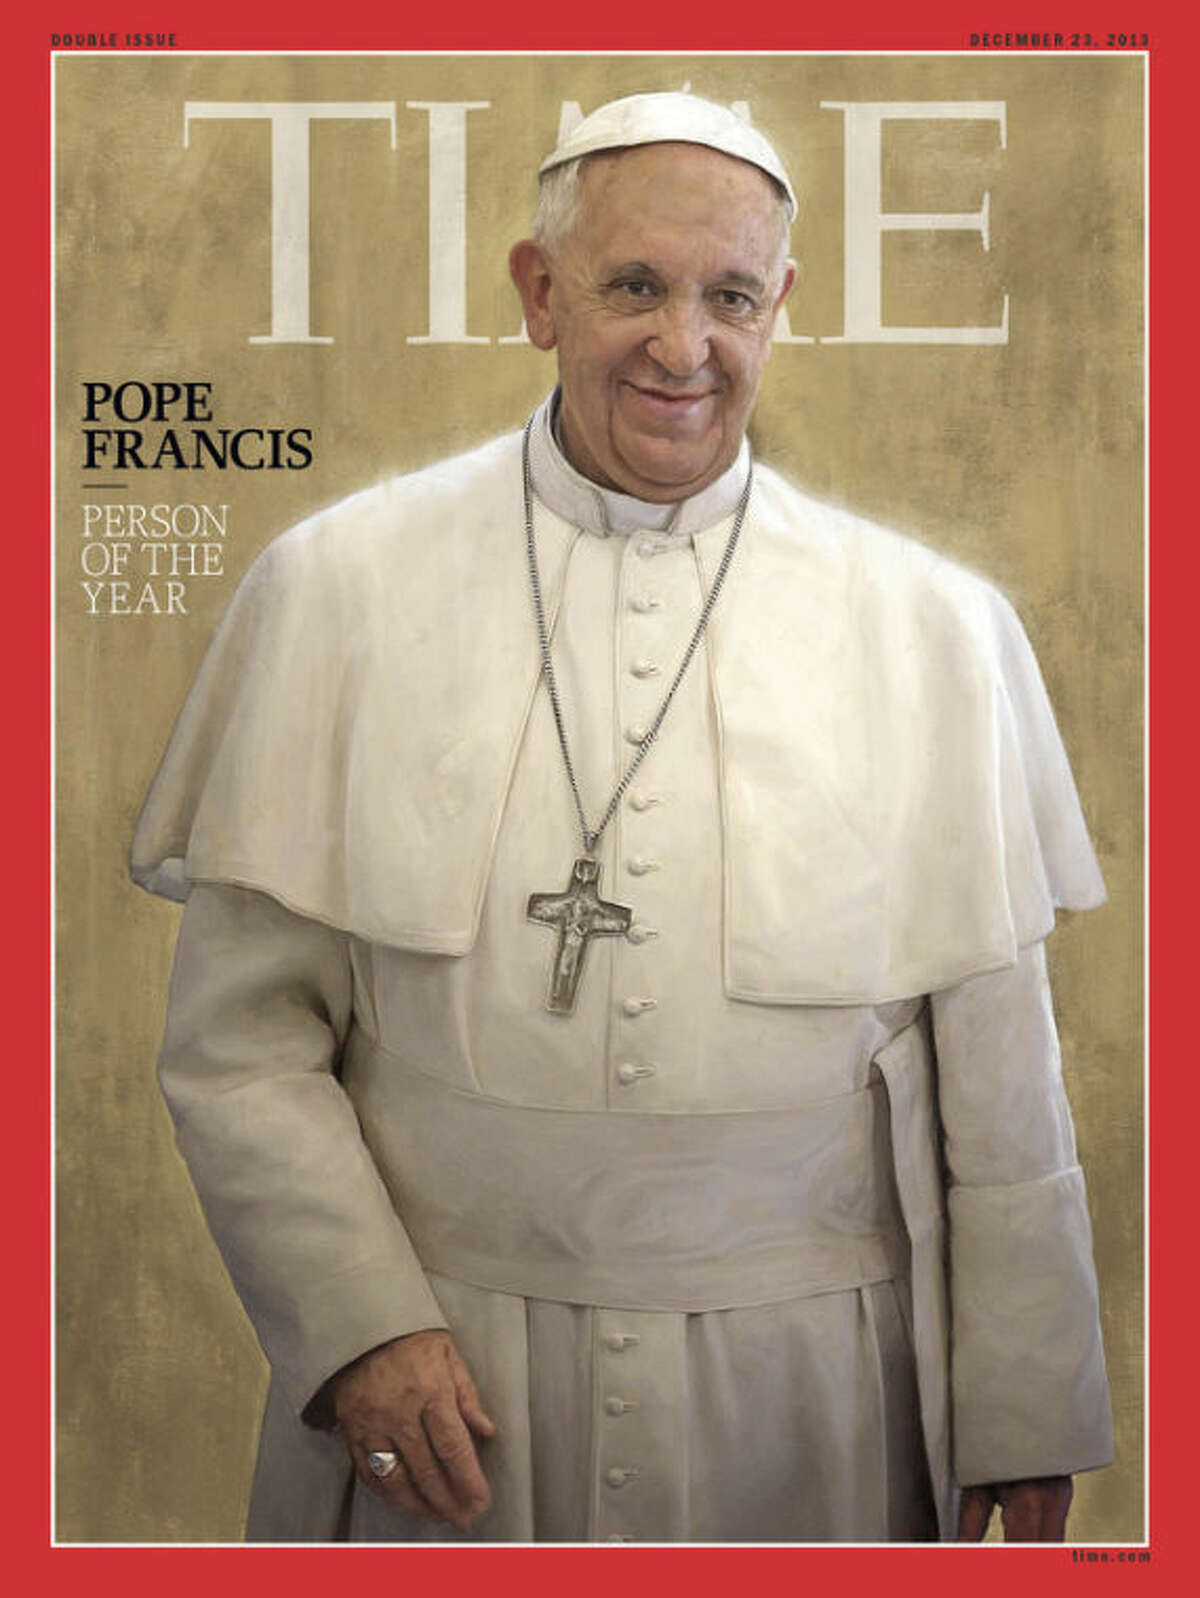 Pope Francis, Time magazine's 2013 Person of the Year, is seen an undated photo of the magazine cover provided by Time, Wednesday, Dec. 11, 2013. Time said the Catholic church?'s new leader has changed the perception of his organization in an extraordinary way in a short time. (AP Photo/